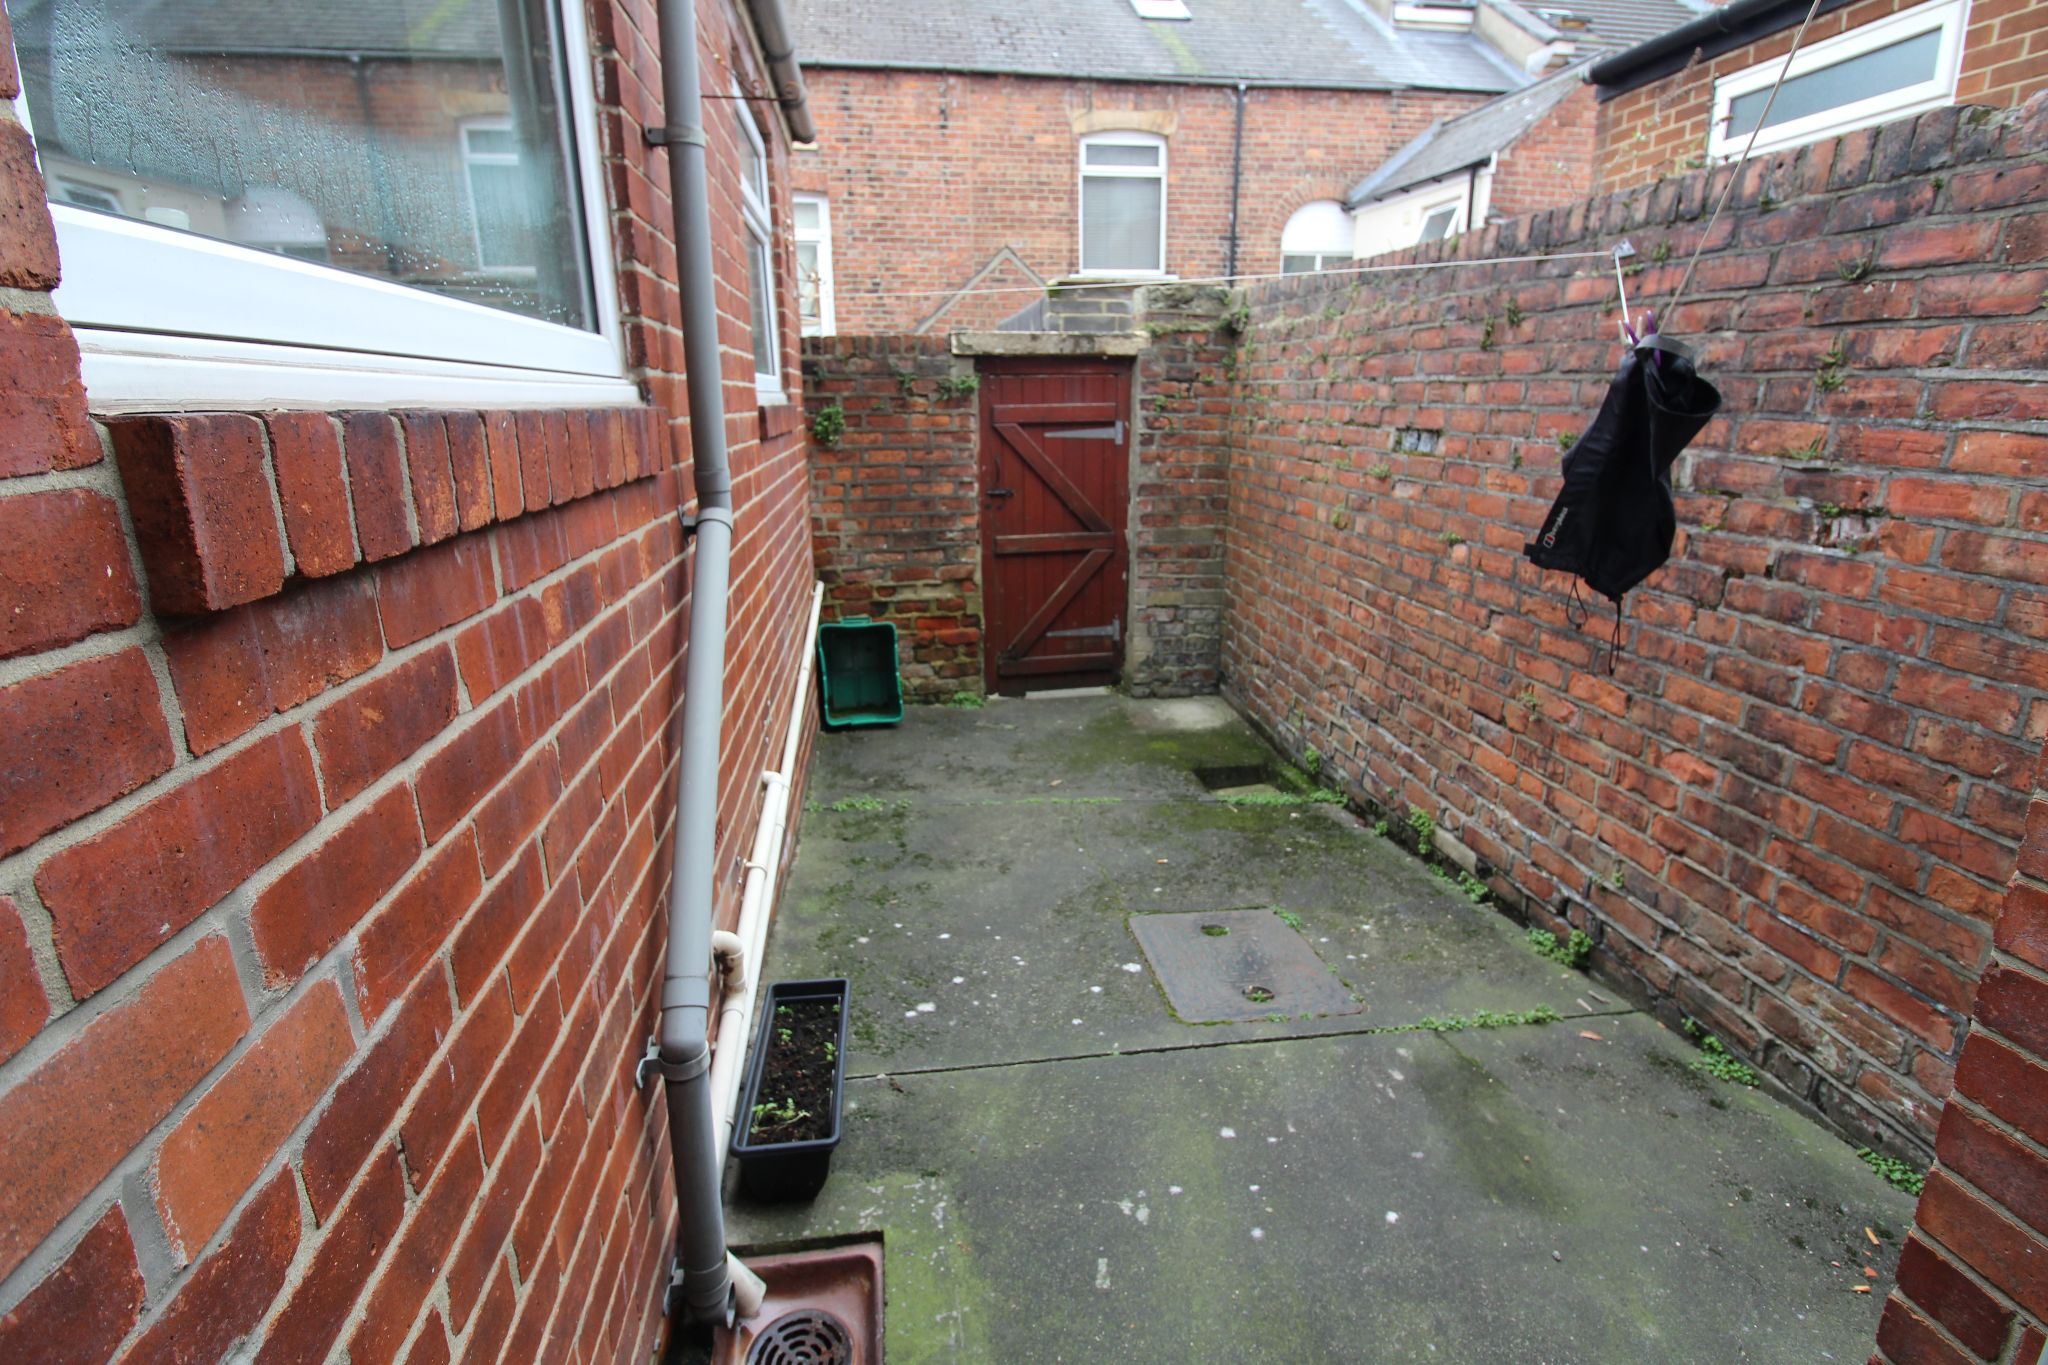 2 bedroom mid terraced house Let Agreed in Bishop Auckland - Photograph 18.